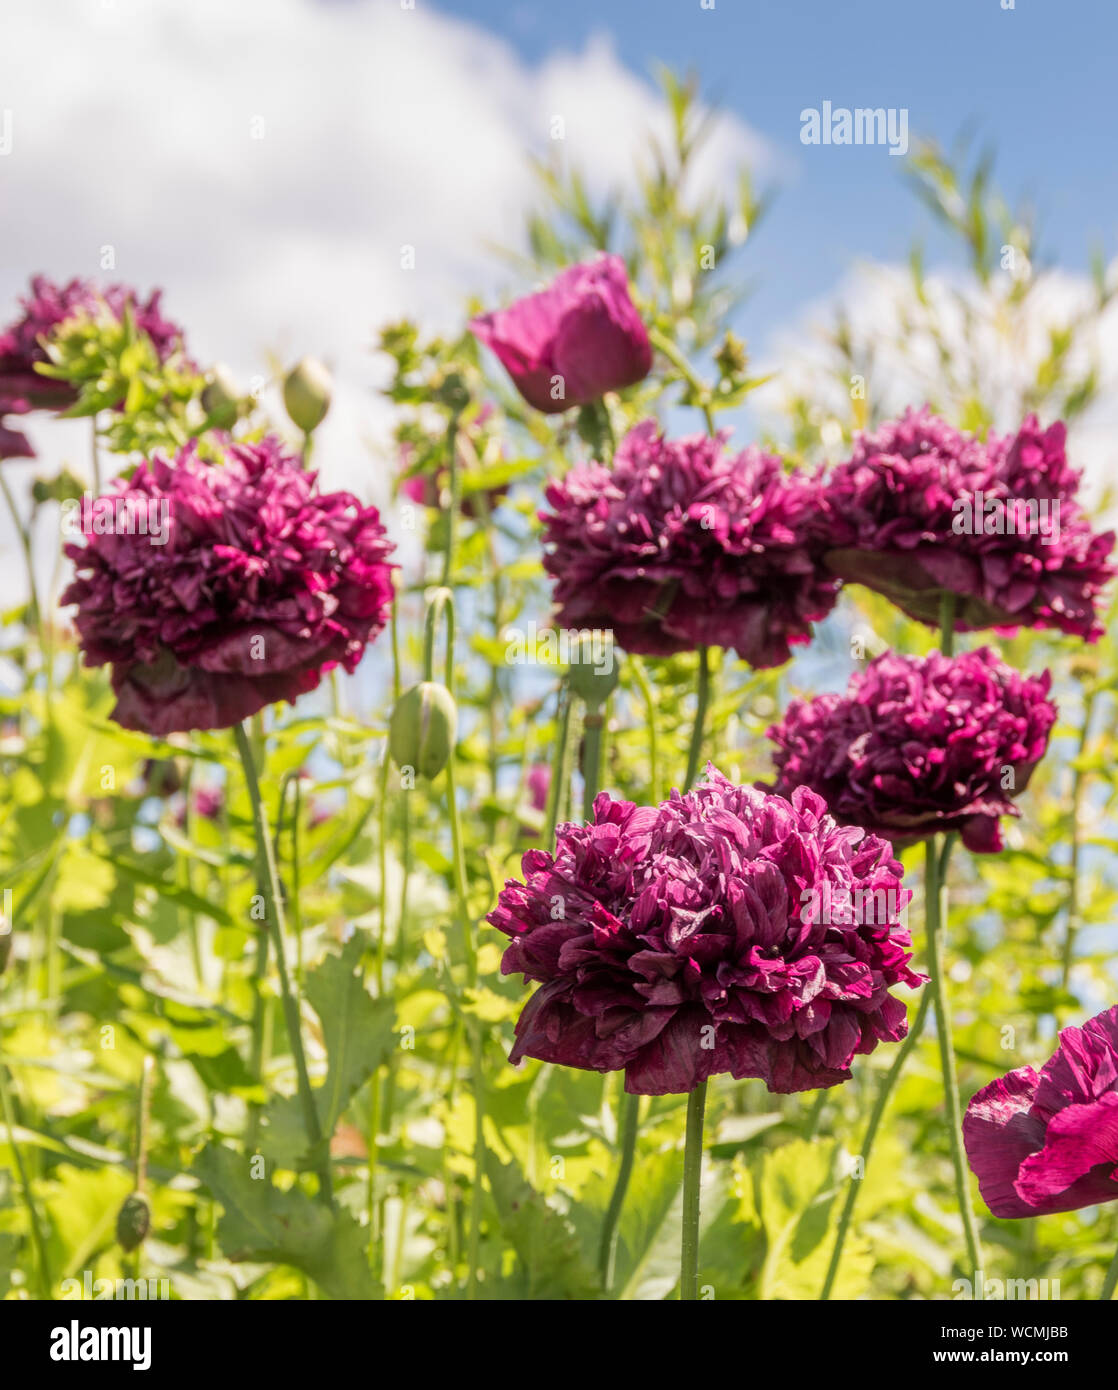 Summer Blooming Flowers Stock Photo 265984863 Alamy